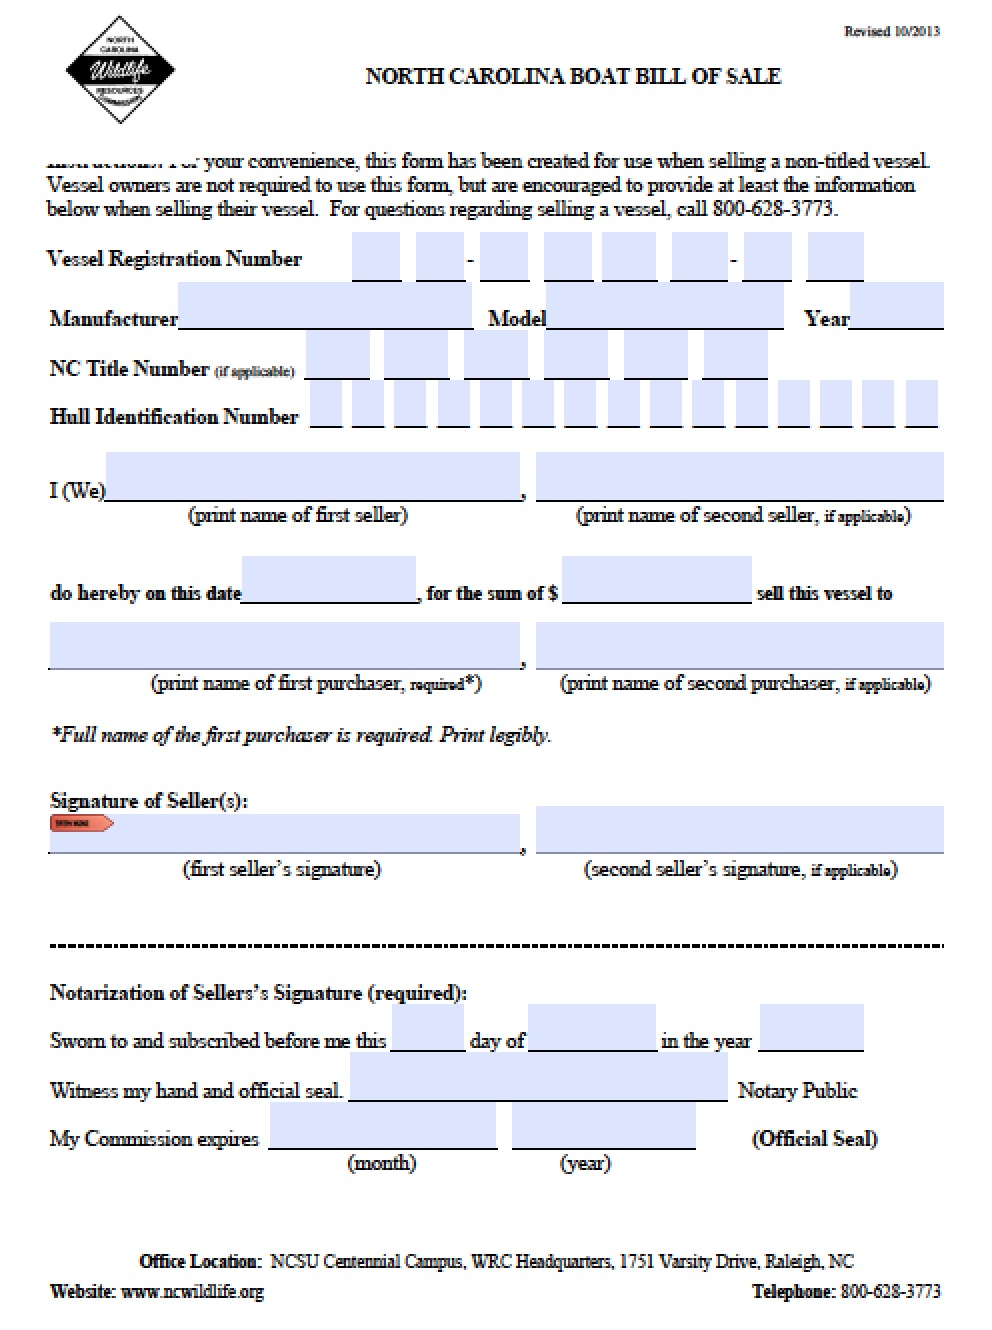 firearm bill of sale nc Free North Carolina Boat Bill of Sale Form | PDF | Word (.doc)